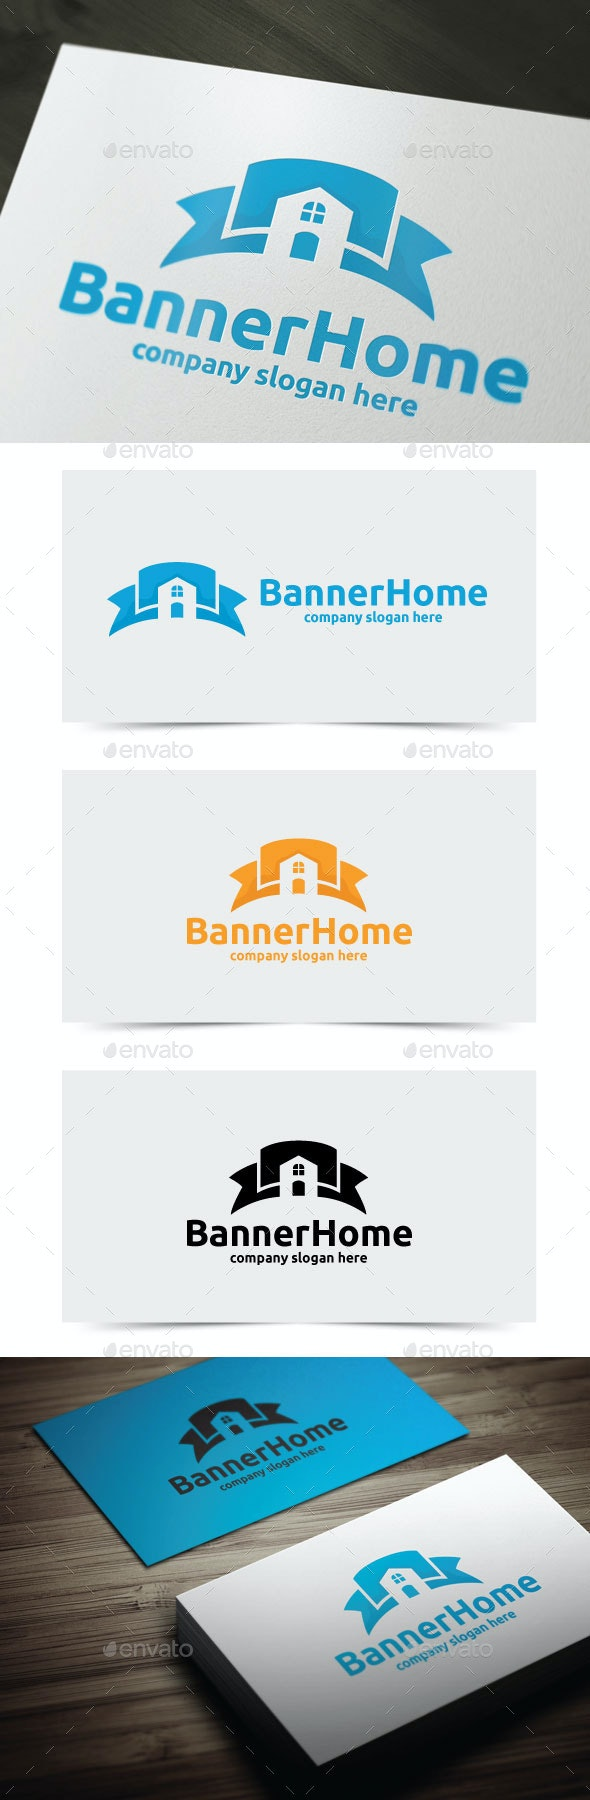 Banner Home - Objects Logo Templates